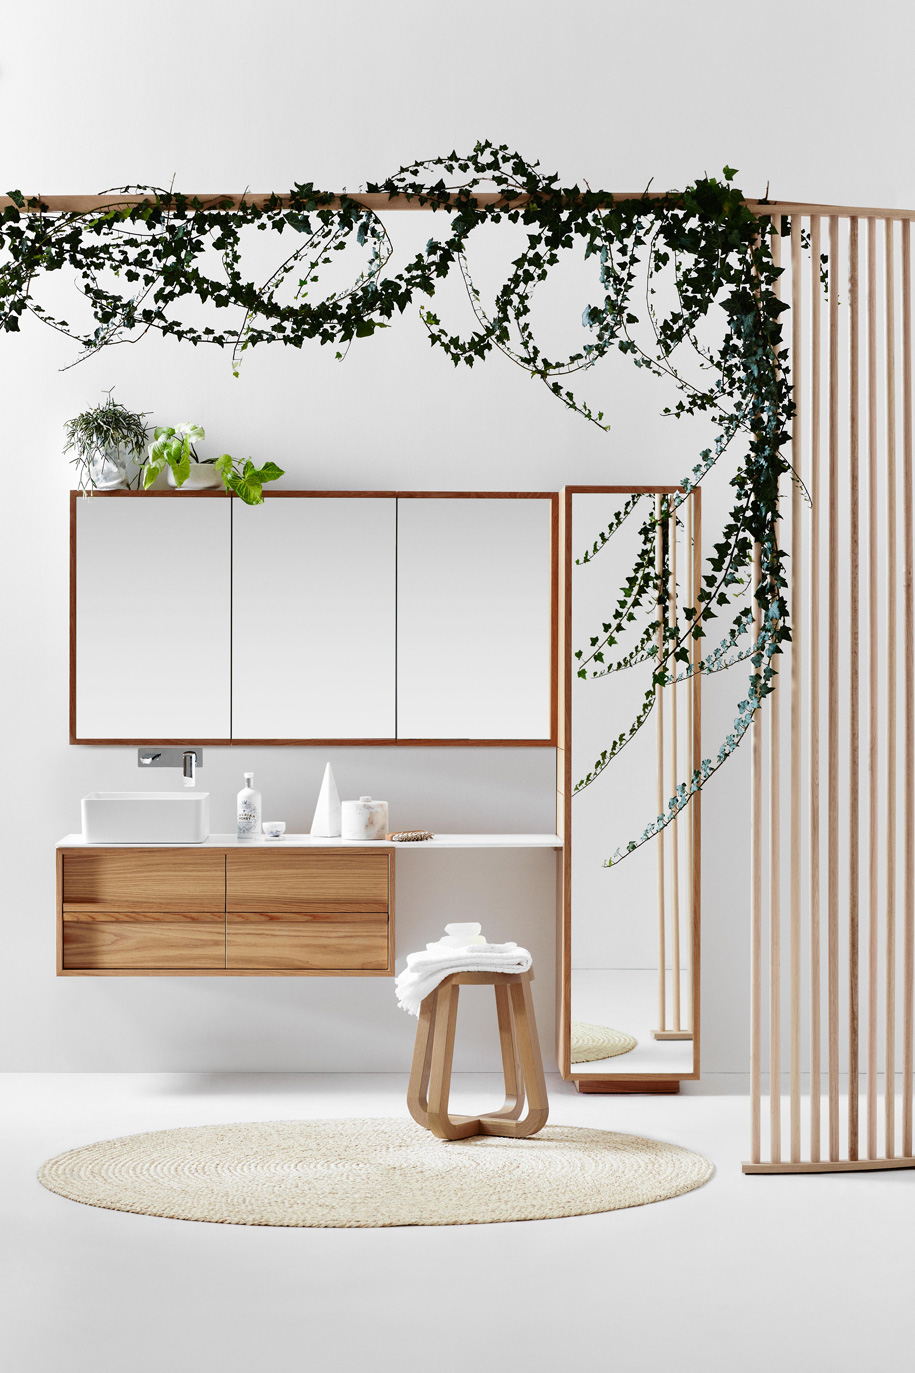 Issy By Zuster Brings Beauty Into The Bathroom Habitus